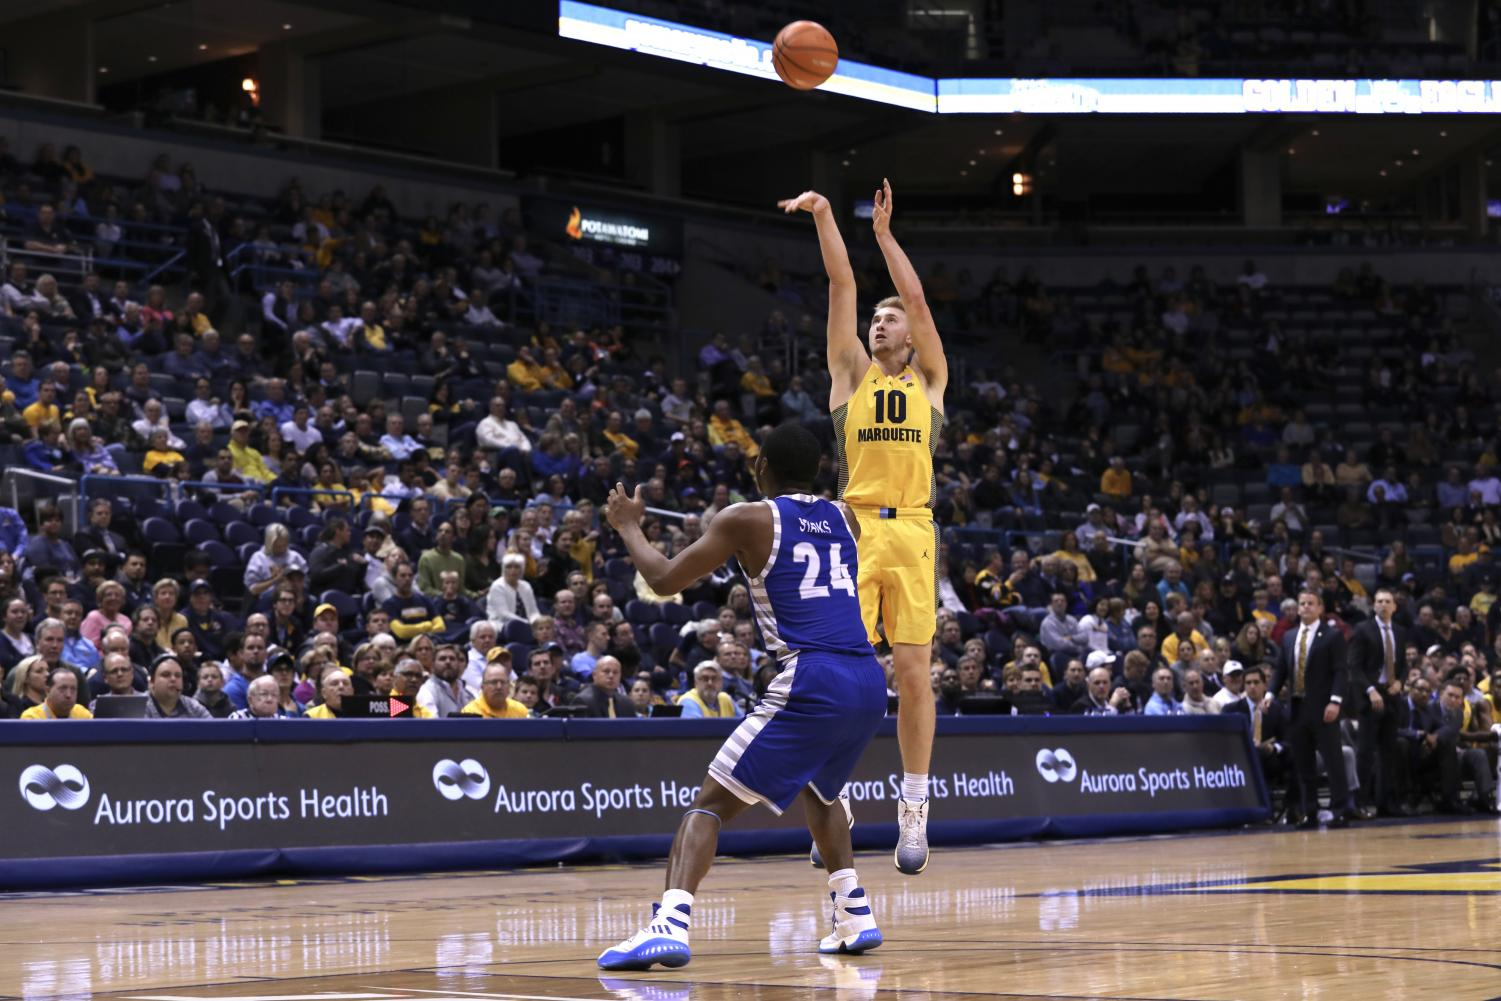 Sam Hauser had a career-high 30 point performance against Eastern Illinois.